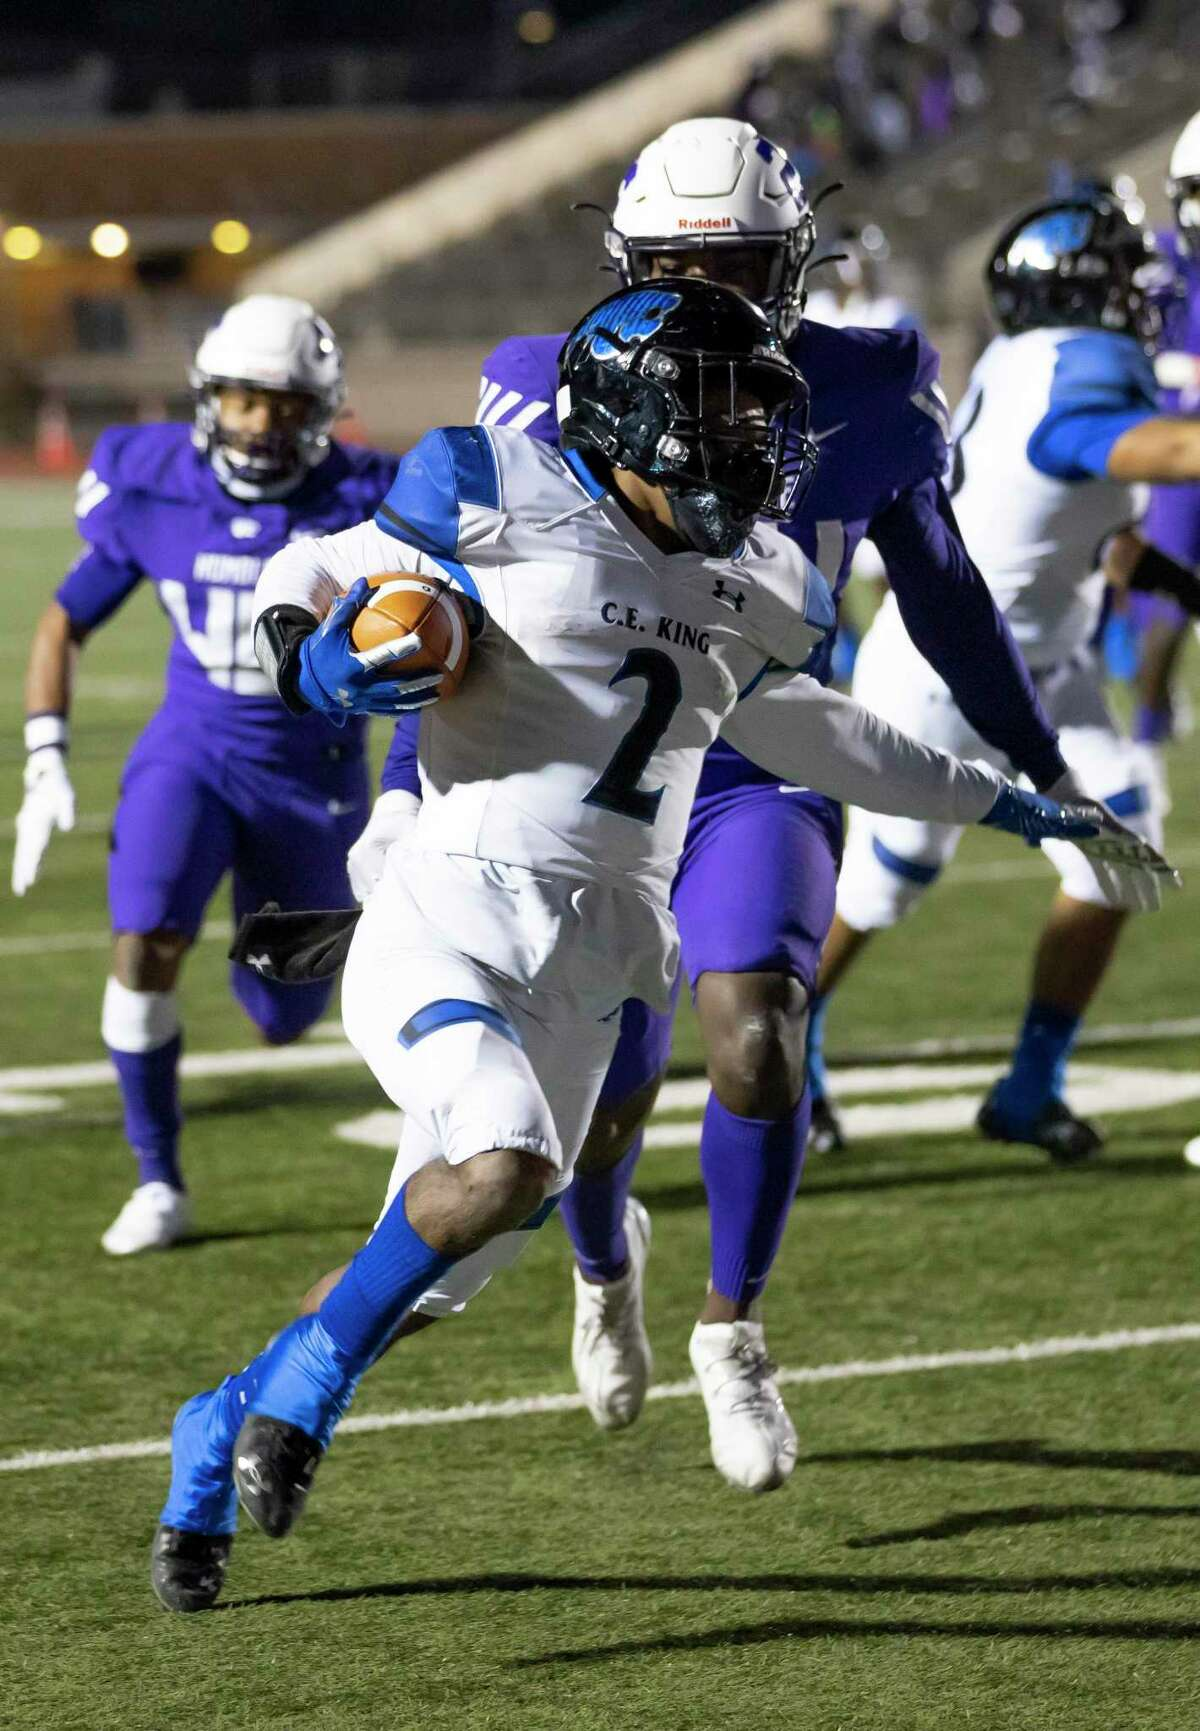 C.E. King Kodi Russi (2) scores a touchdown despite pressure from Humble defensive back Jatavian James (24) during the fourth quarter of a District 21-6A football game at Turner Stadium, Thursday, Dec. 3, 2020.